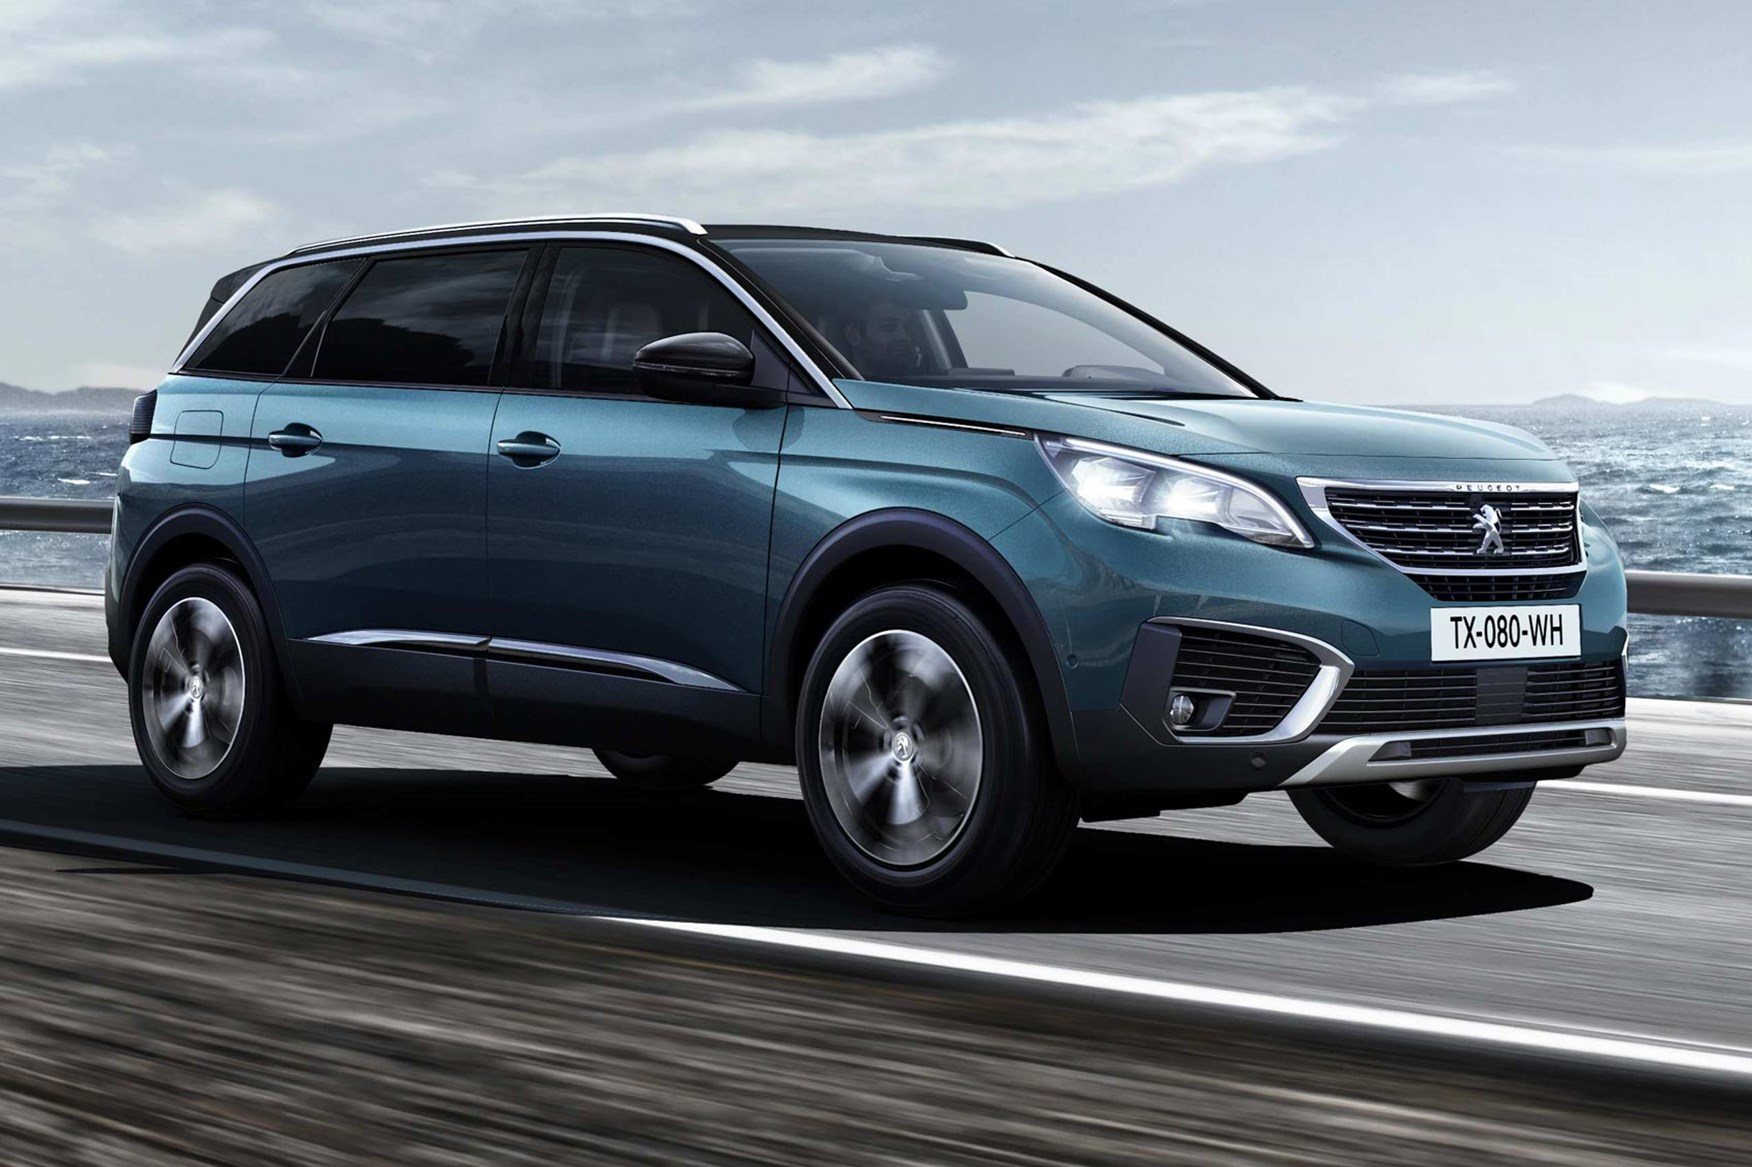 2018 7 Seater Cars >> Same name, very different face: new Peugeot 5008 unveiled by CAR Magazine